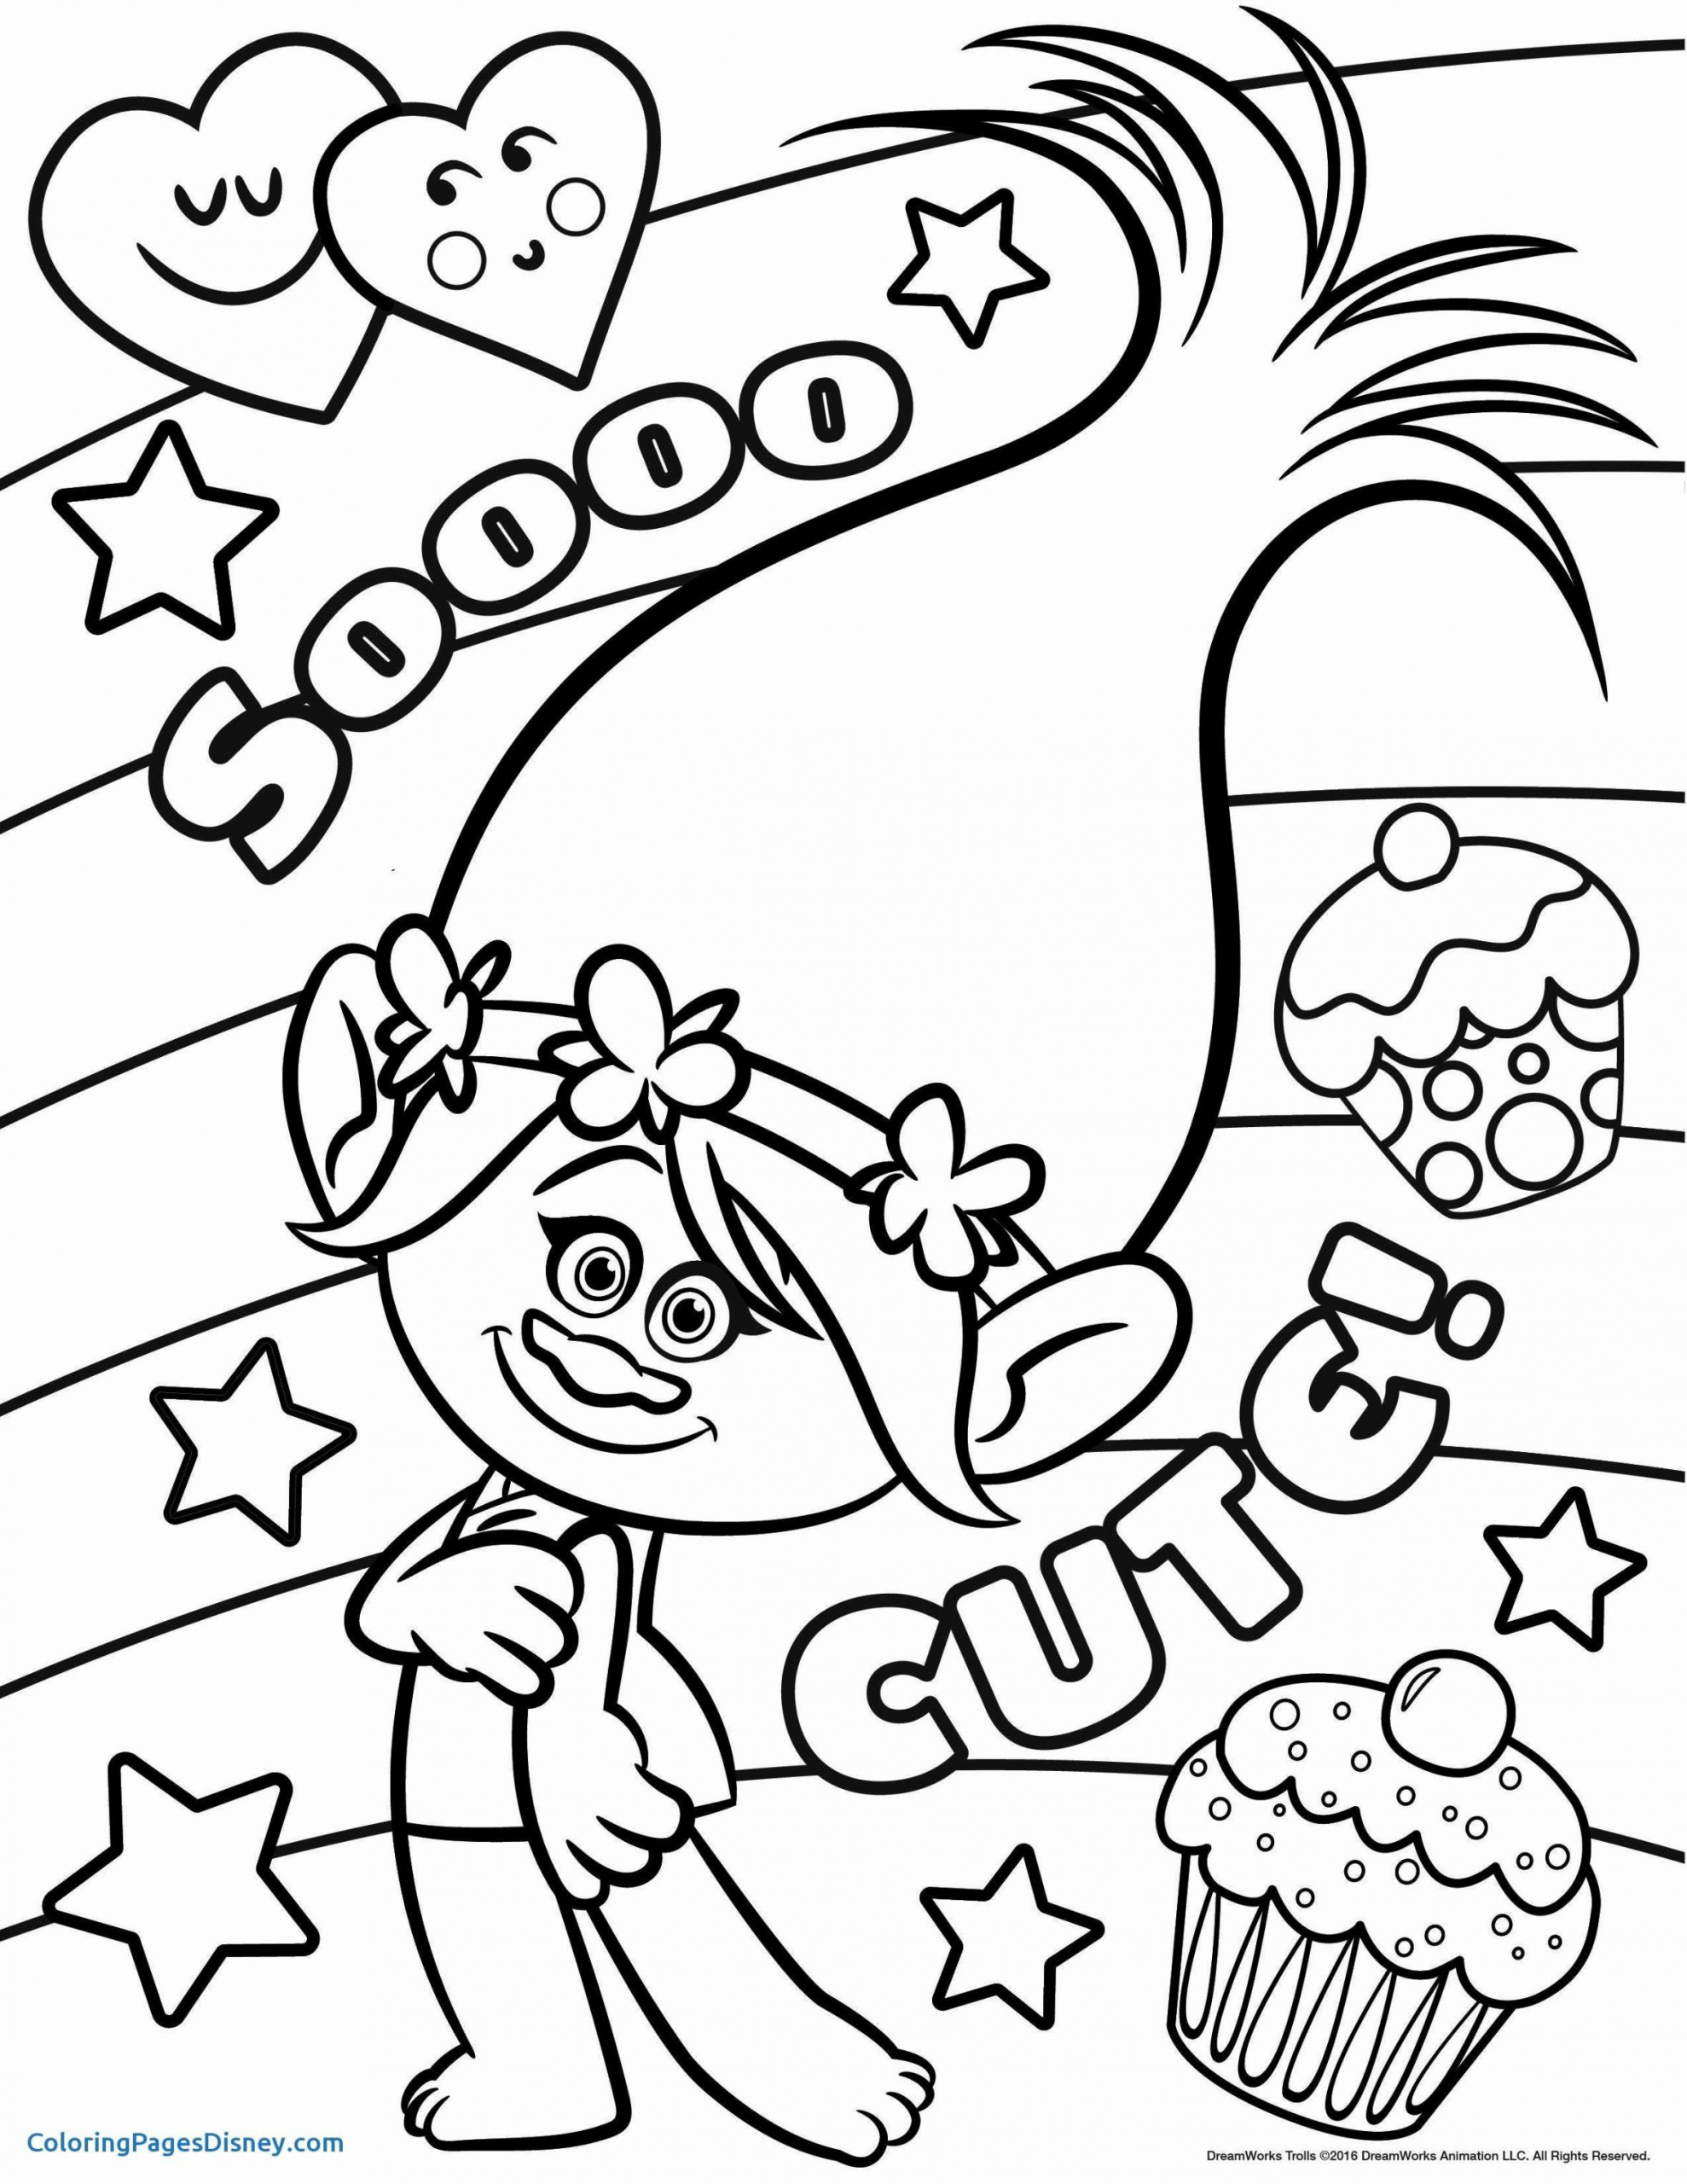 Princess Poppy Coloring Page Youngandtae Com Poppy Coloring Page Disney Coloring Pages Free Disney Coloring Pages